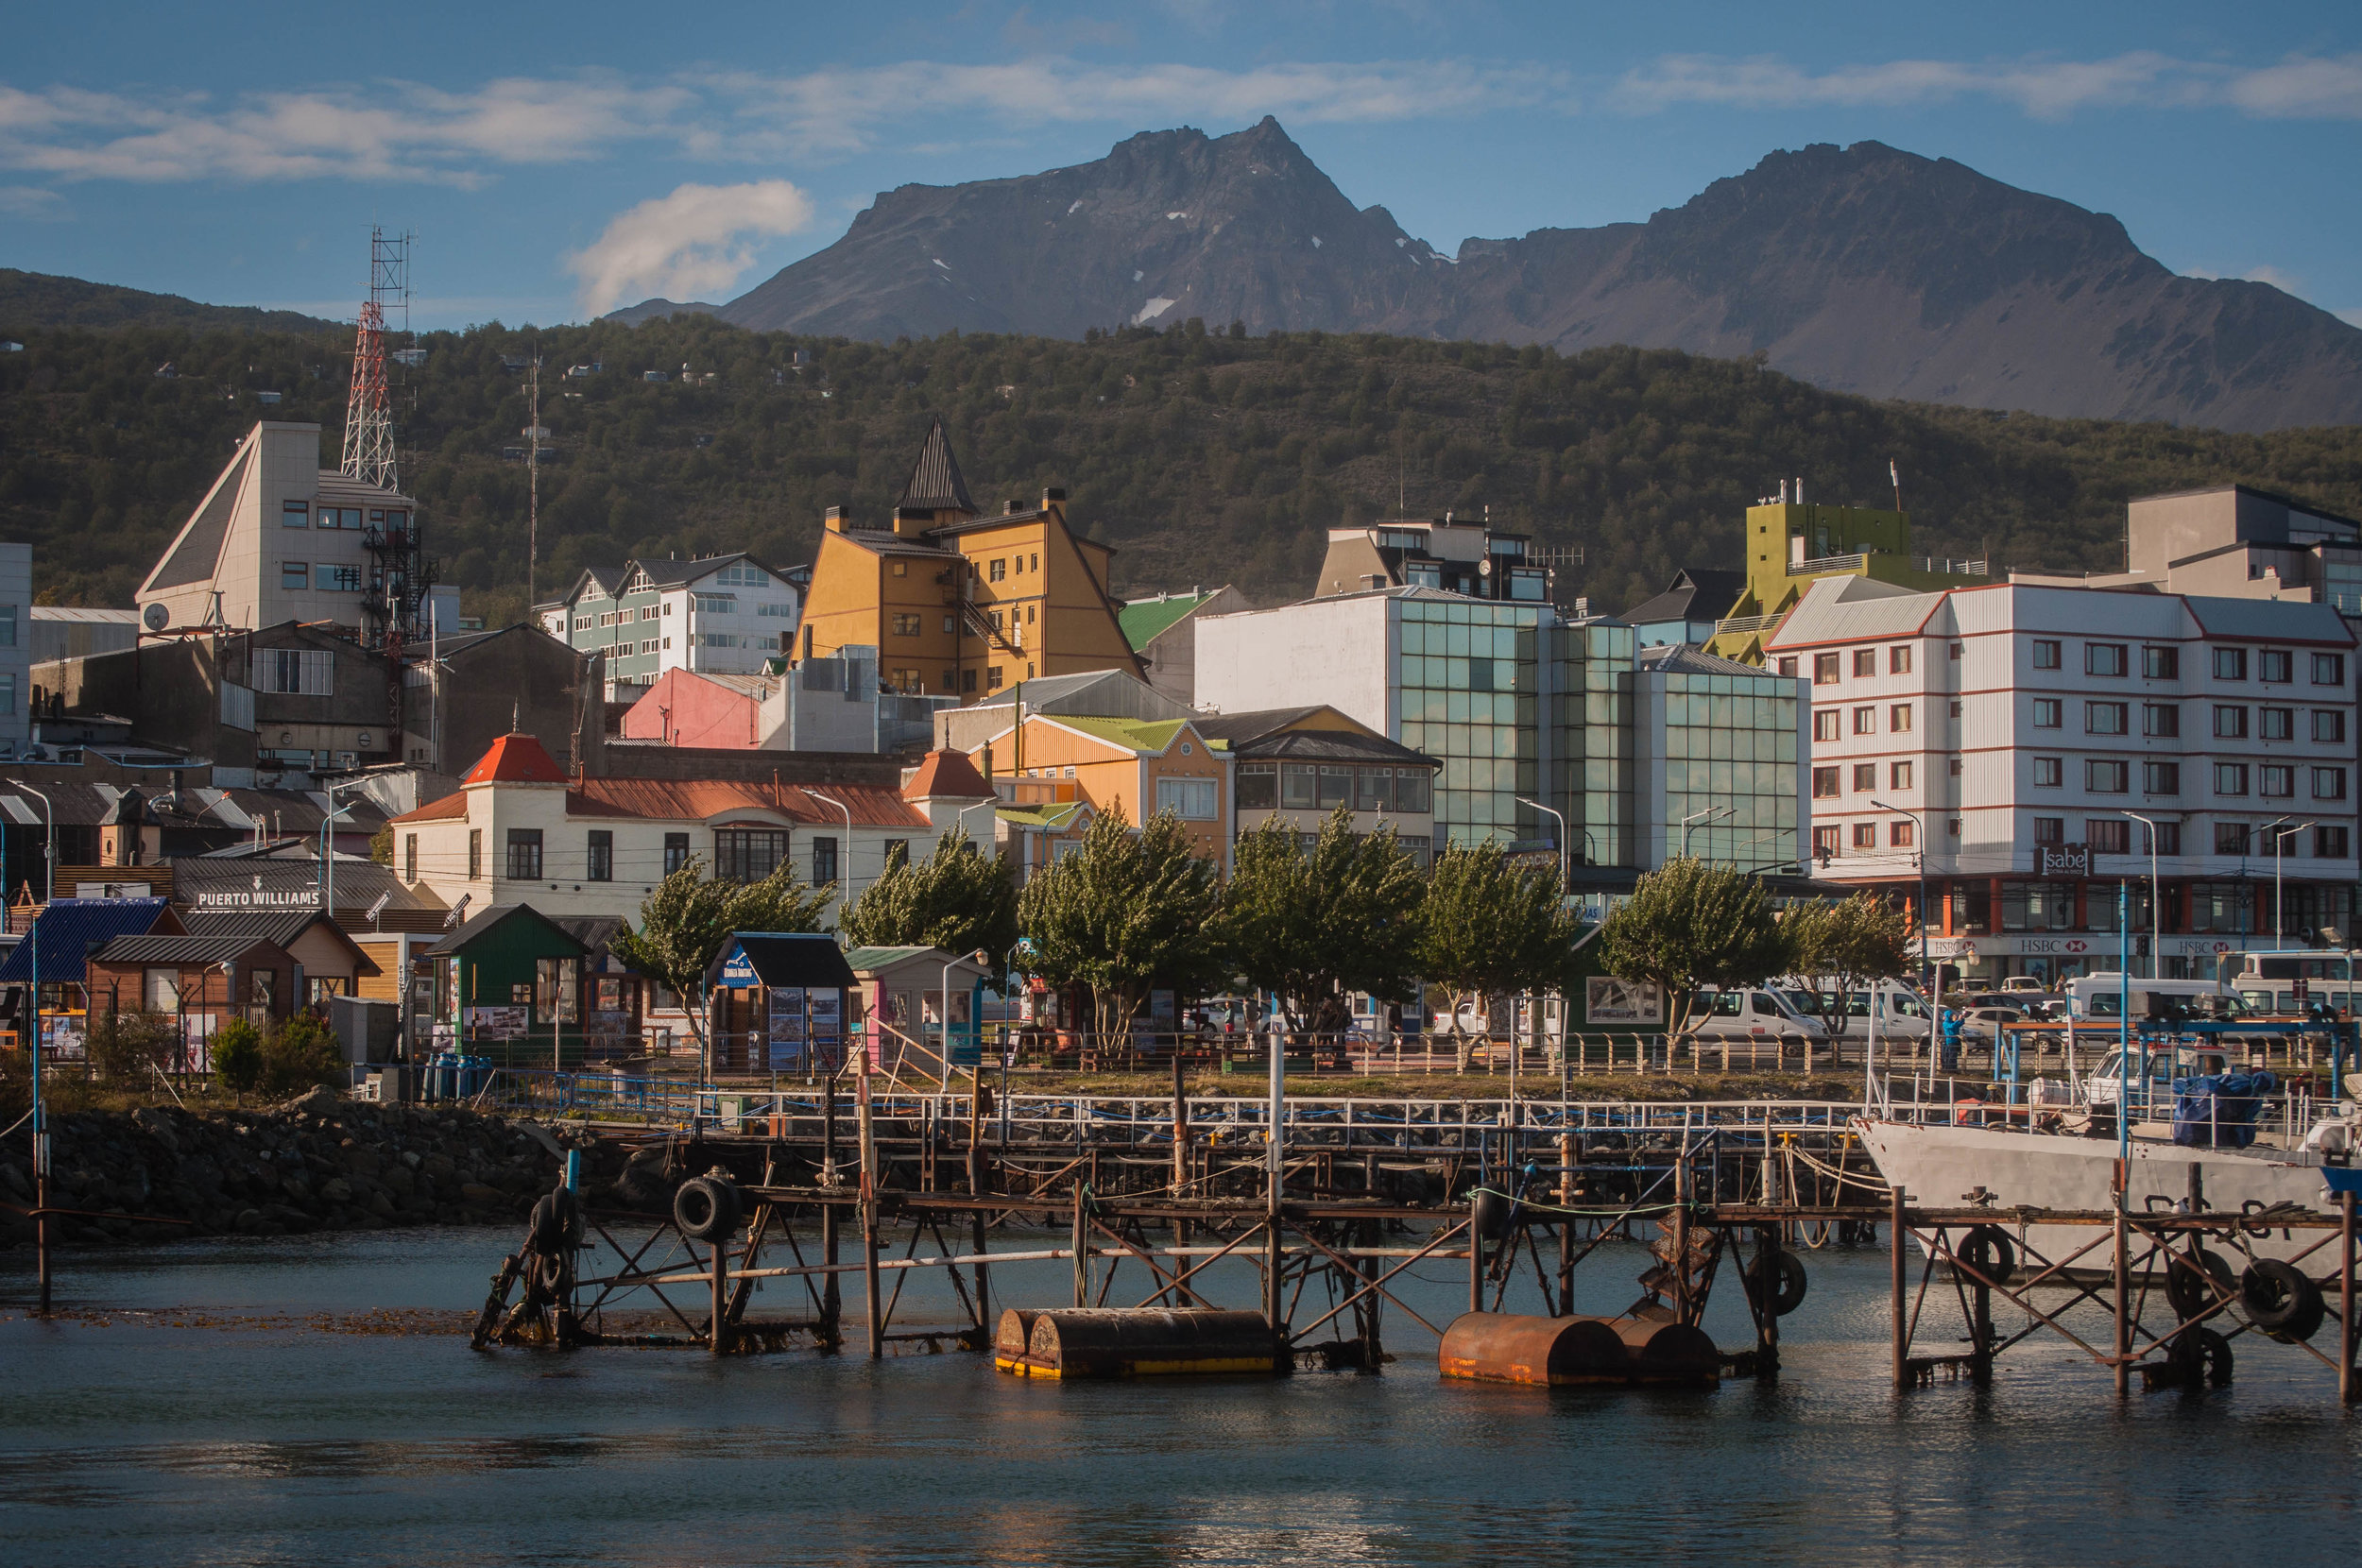 The city of Ushuaia with its colourful buildings. Best things to do in Ushuaia